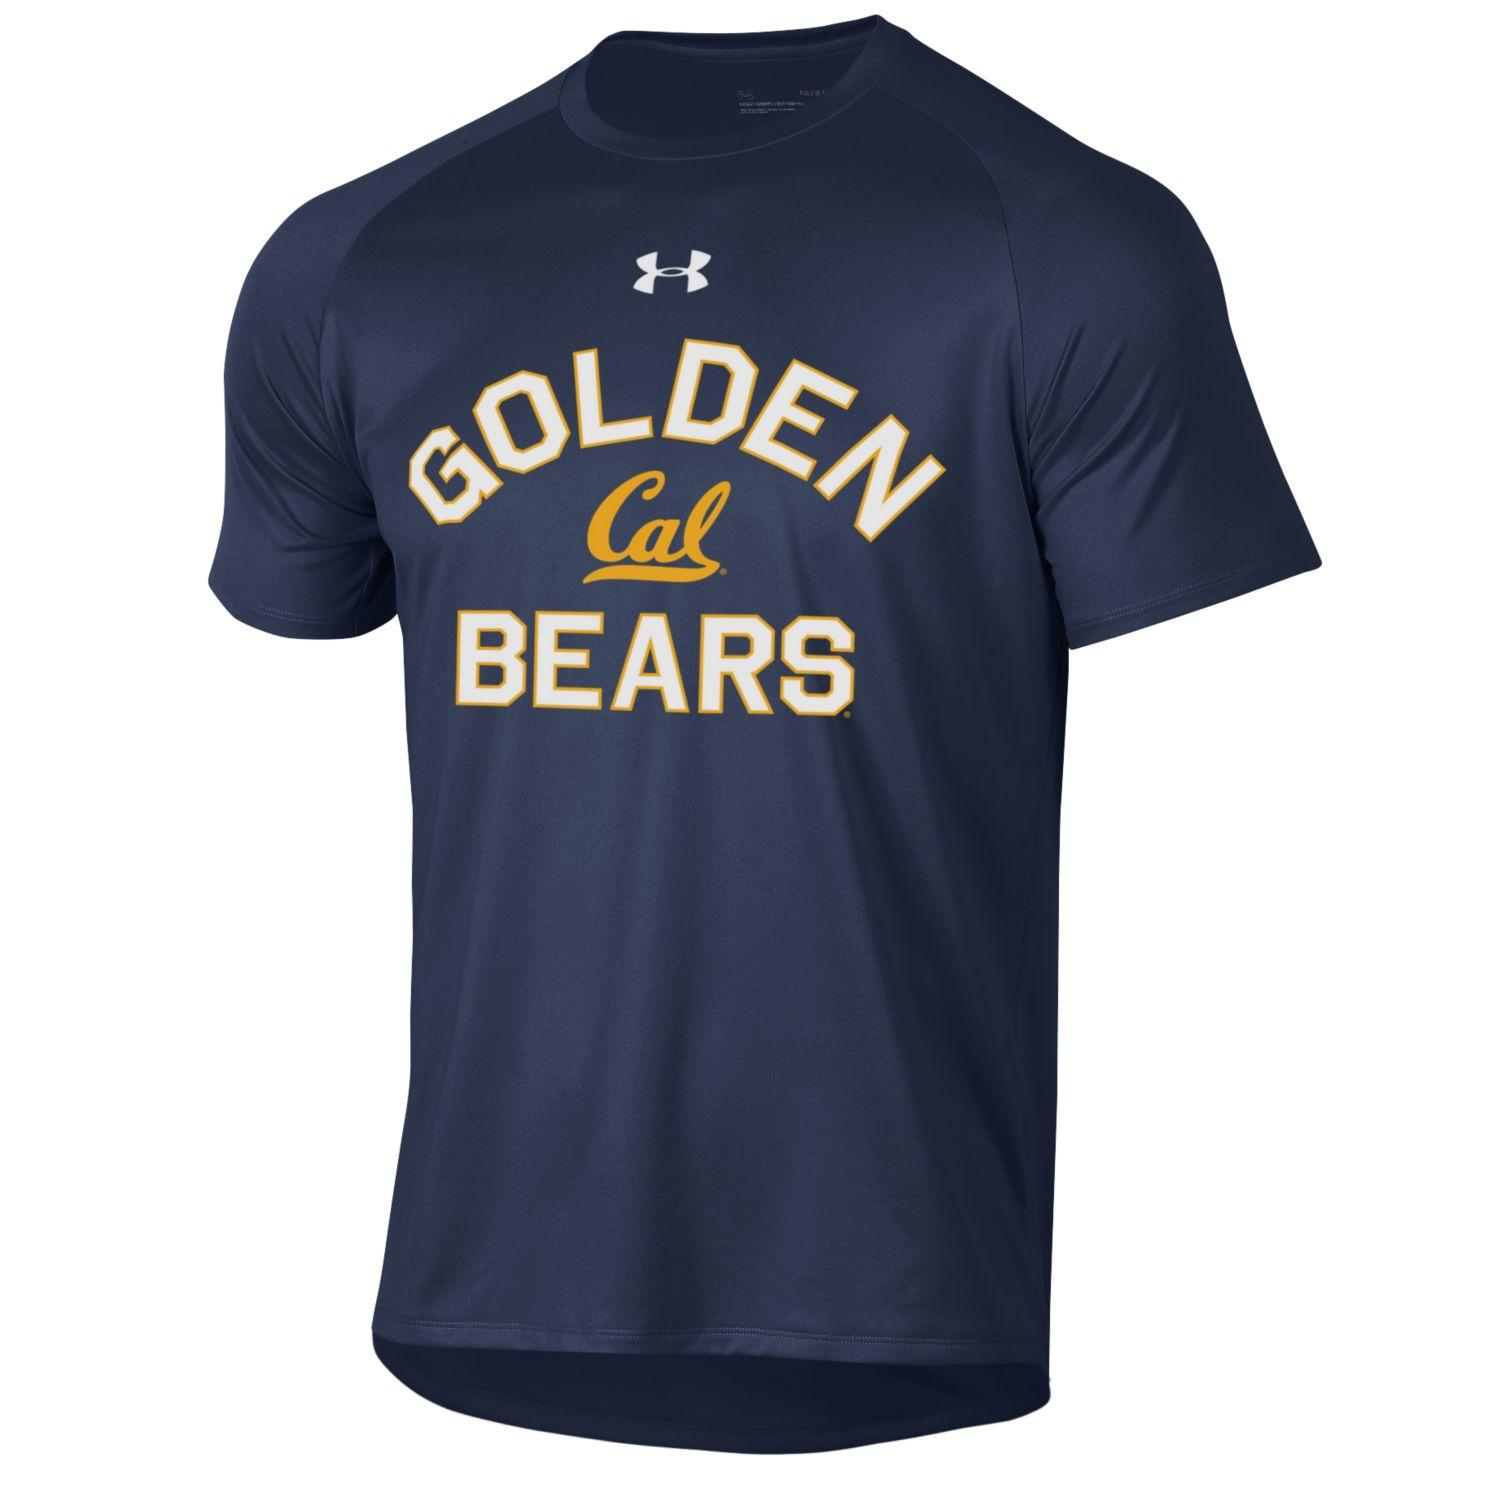 Men's SS Tech Tee 2.0 by Under Armour Golden Bears